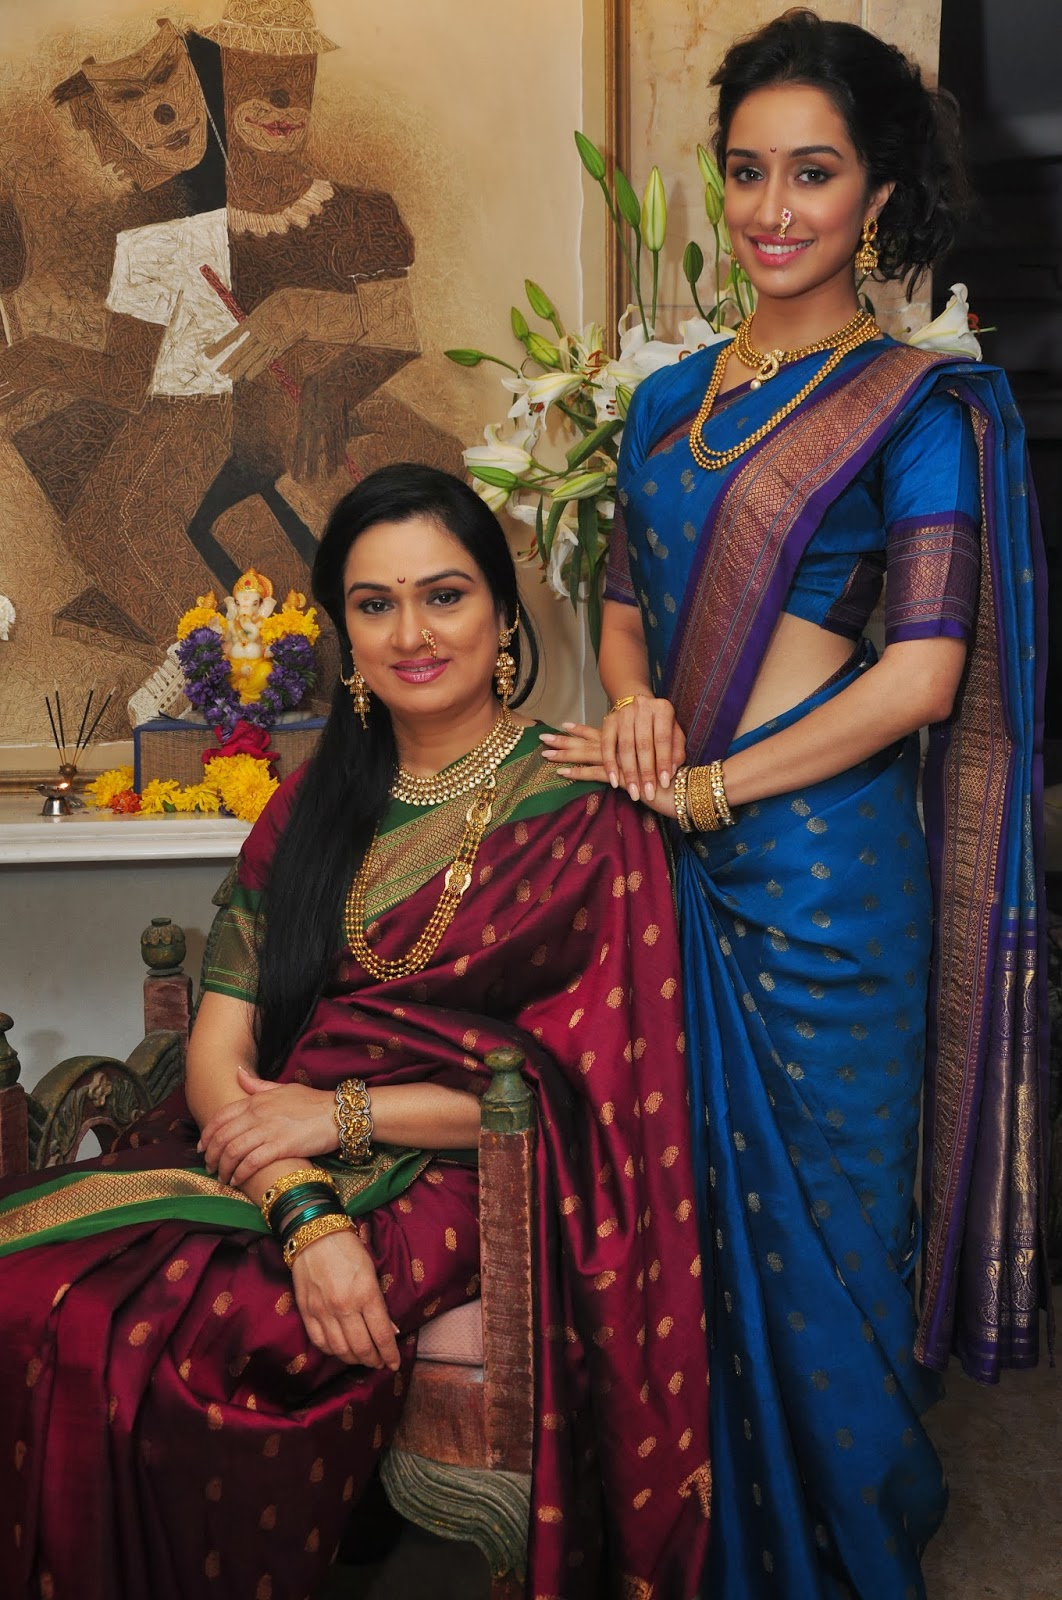 padmini kolhapure in saree - photo #1